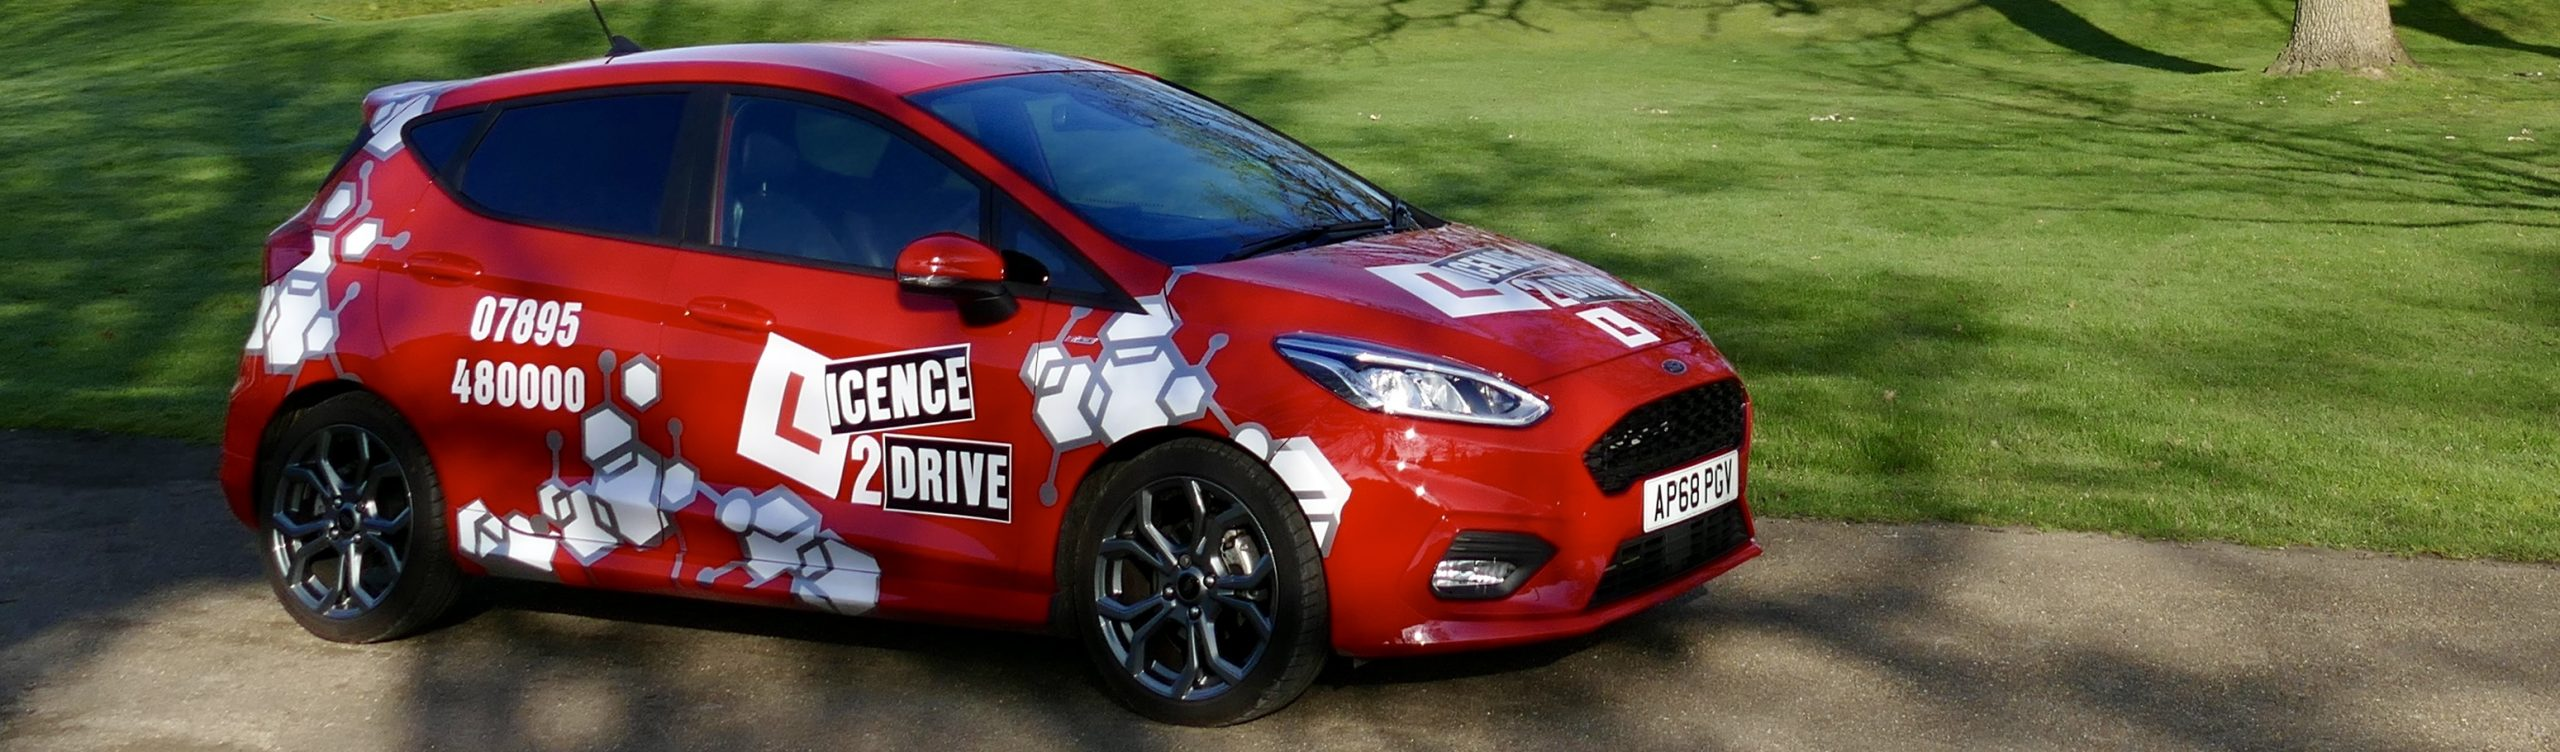 Licence2Drive car at Sprowston Mannor